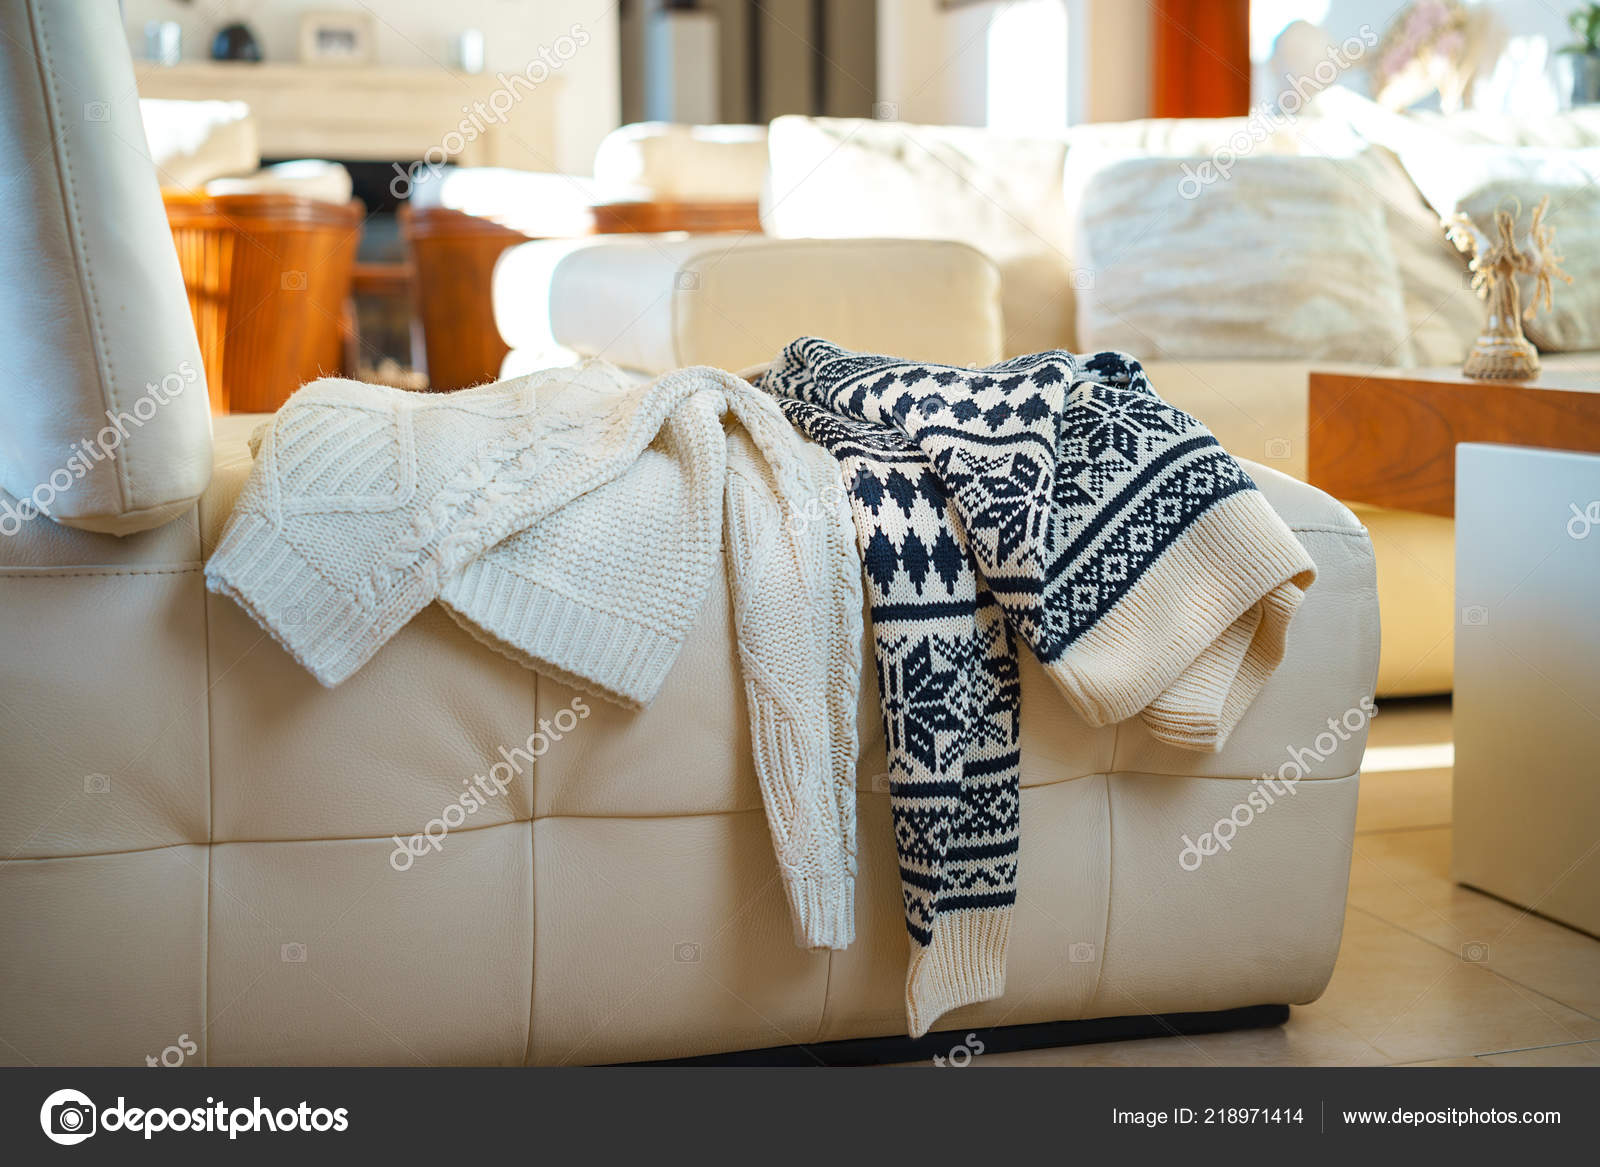 Admirable Warm Winter Knitted Sweaters Two People Dropped On Sofa Gmtry Best Dining Table And Chair Ideas Images Gmtryco